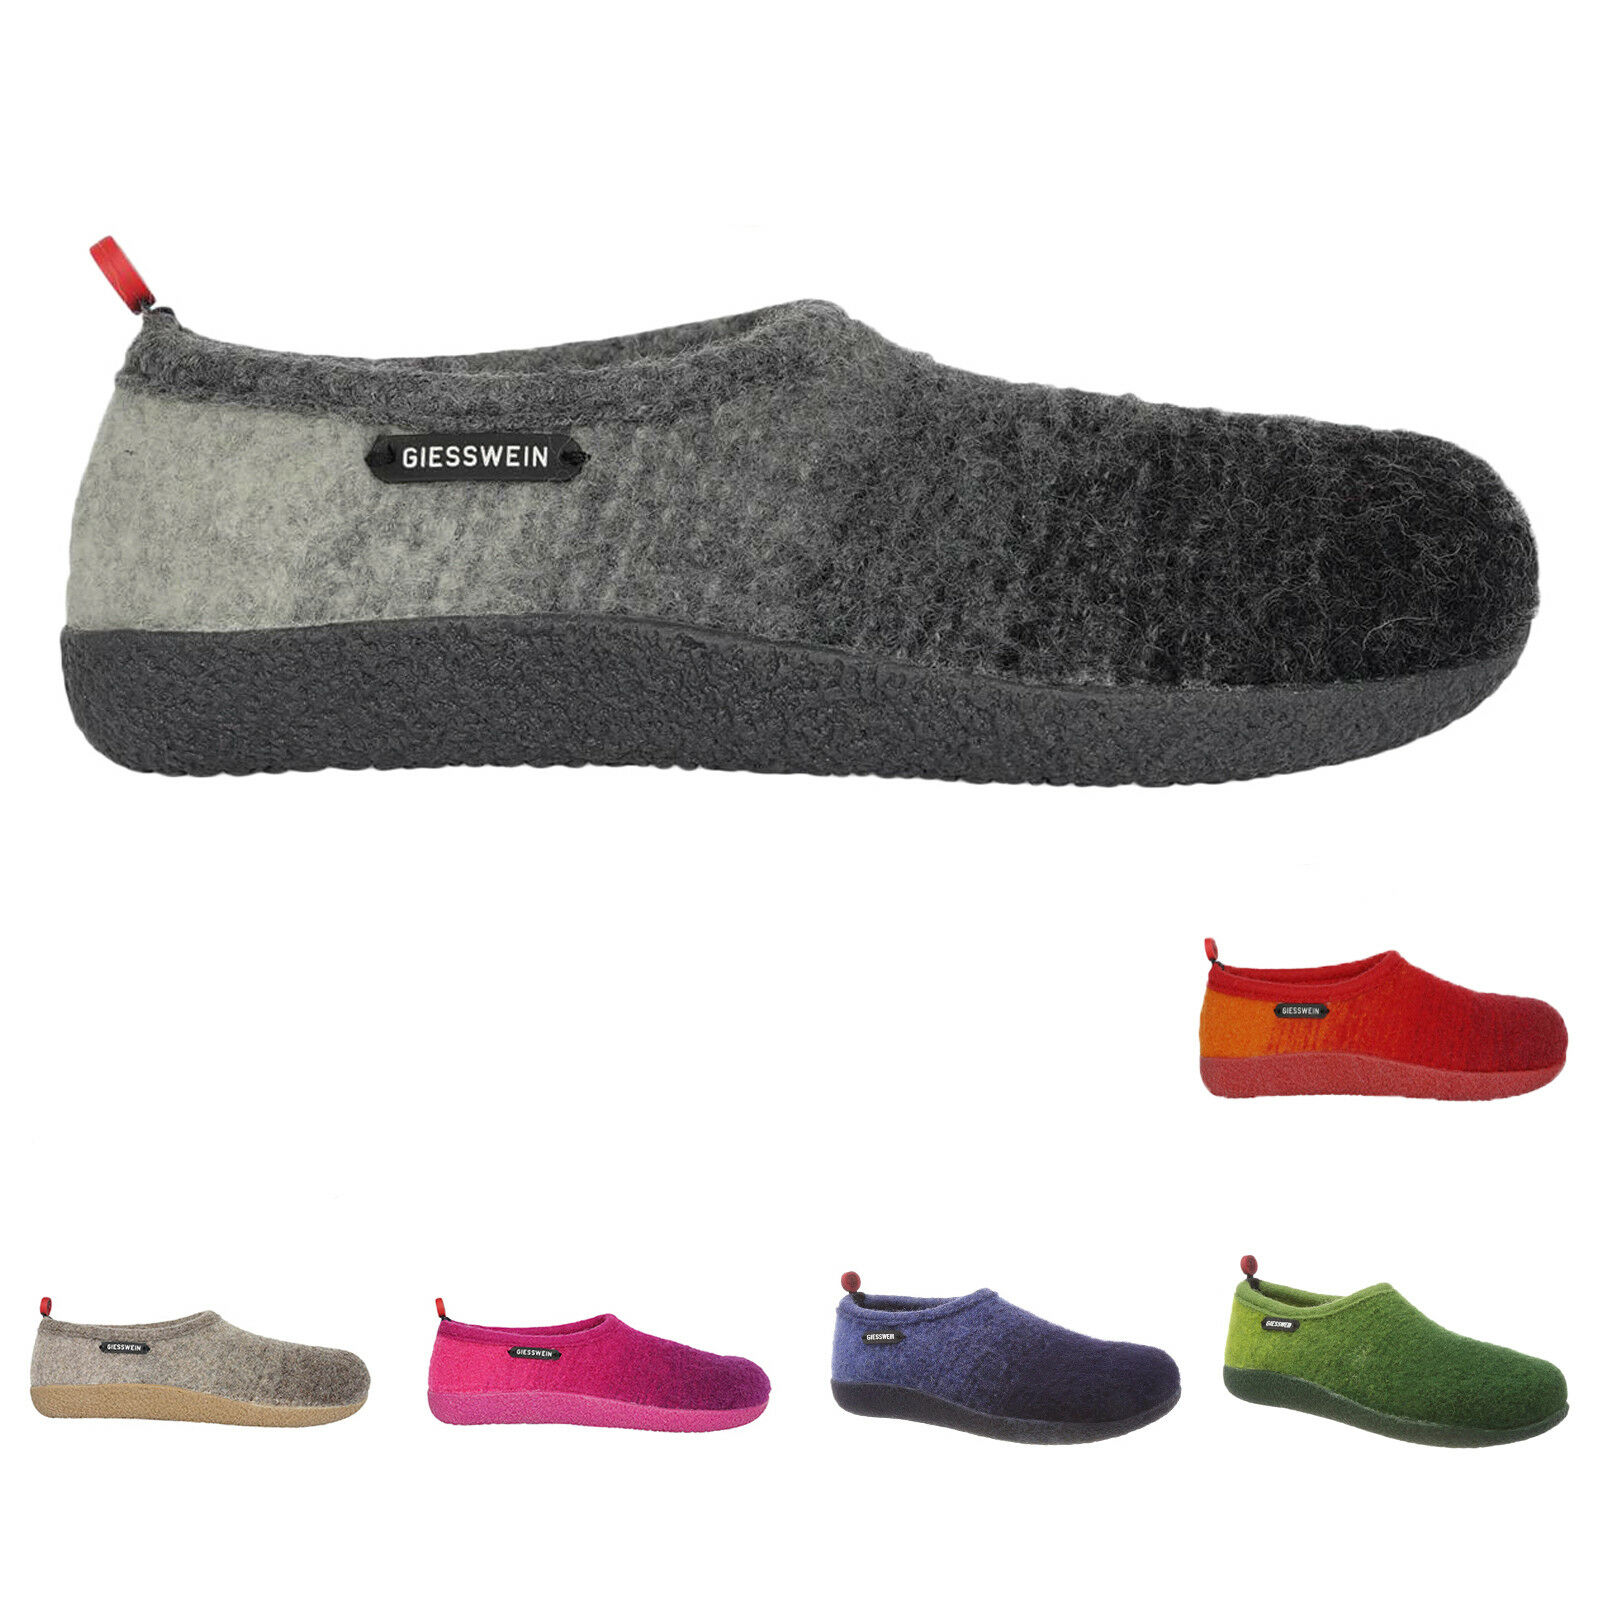 Giesswein vahldorf WOOL Slip-on closed-toe caldo SLIPPERS SautoPE DA DONNA